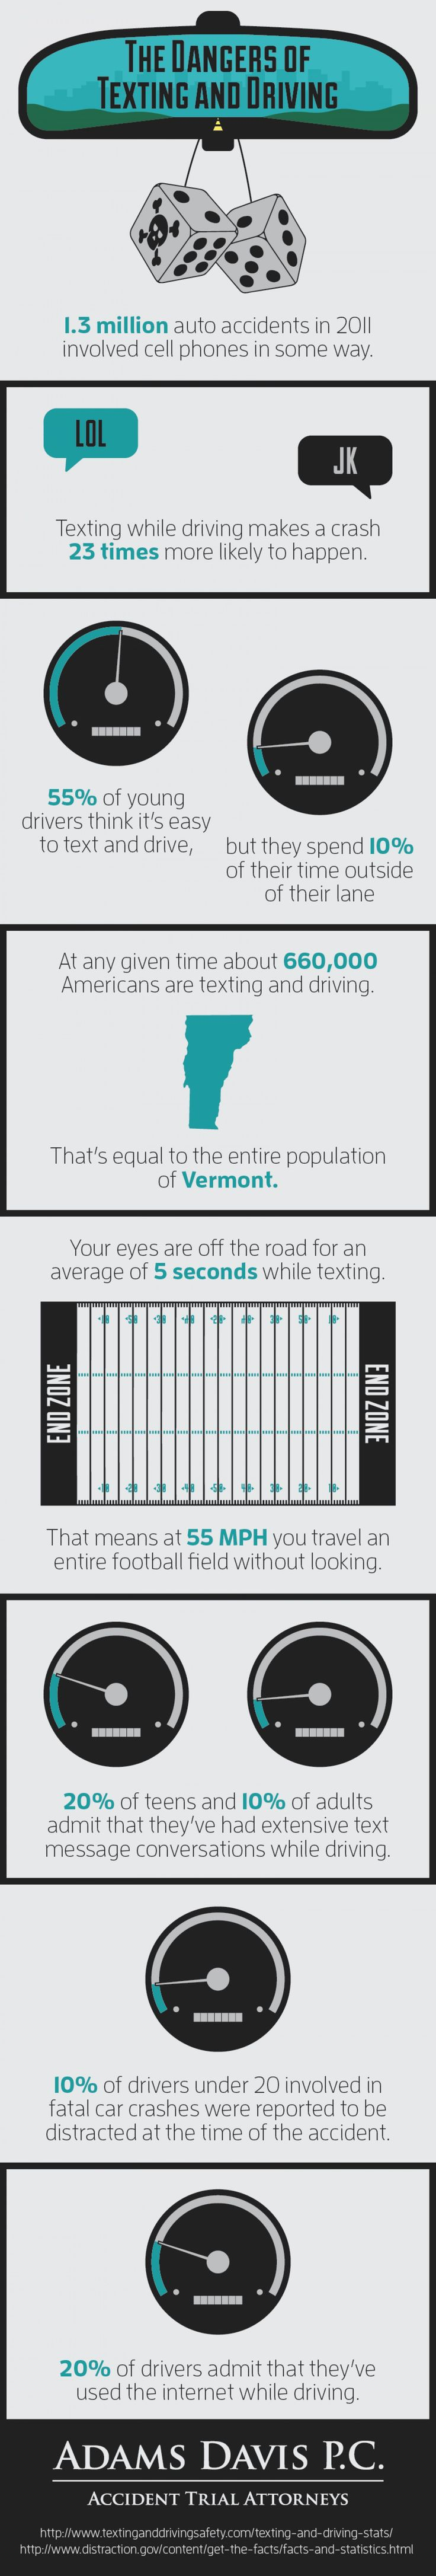 Dangers of Texting and Driving Infographic